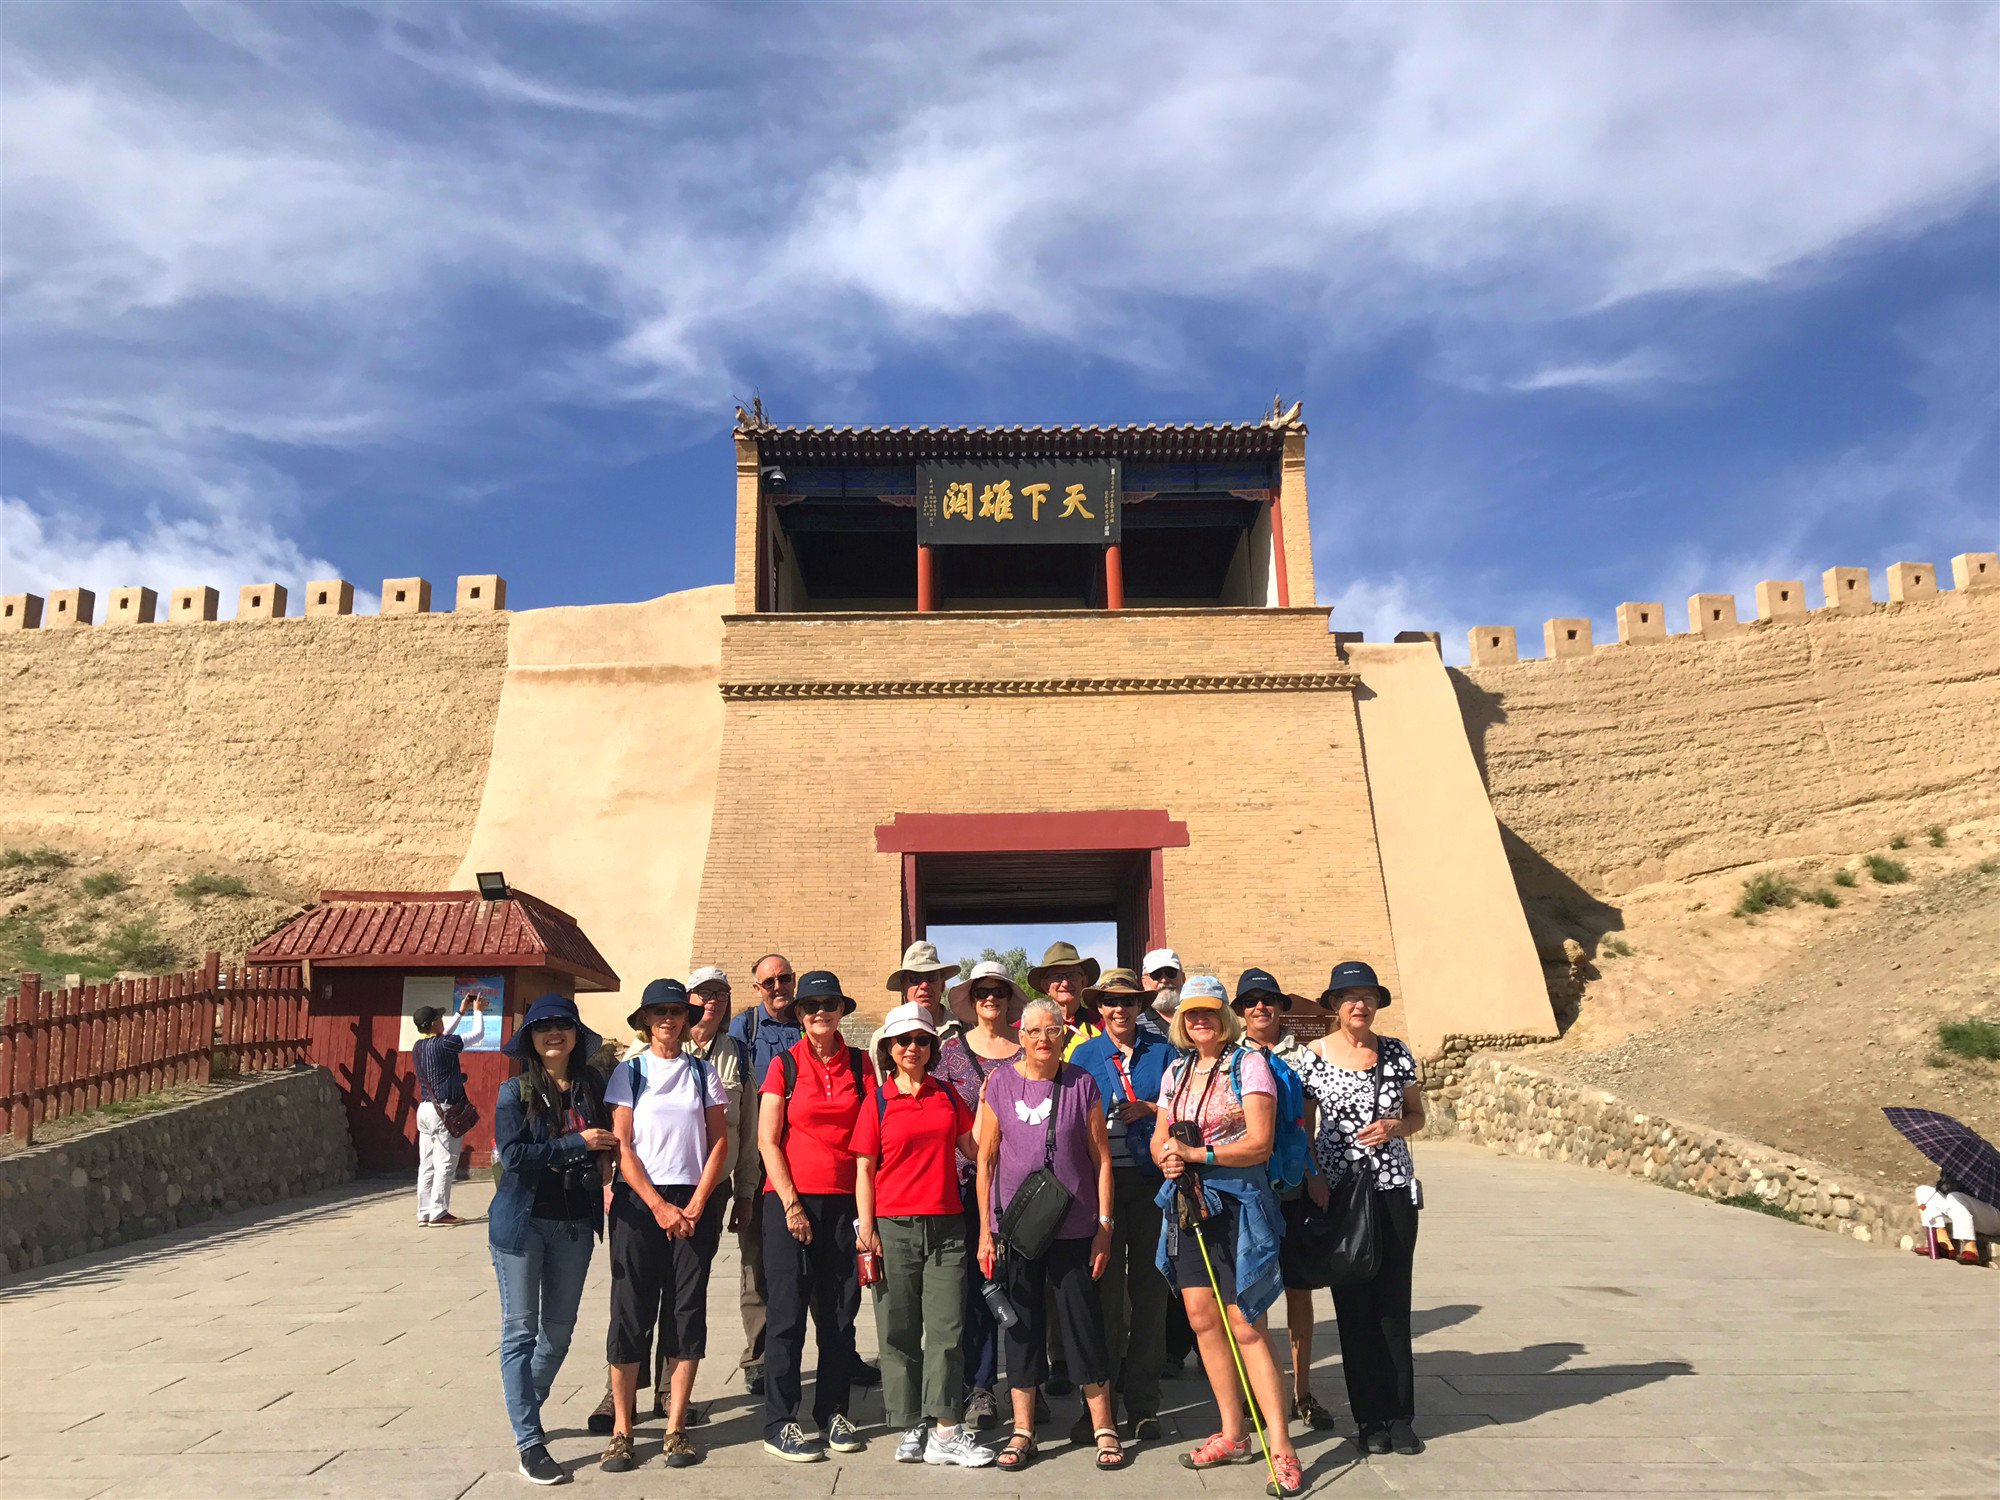 My Silk Road tour – Highlights of Jiayuguan